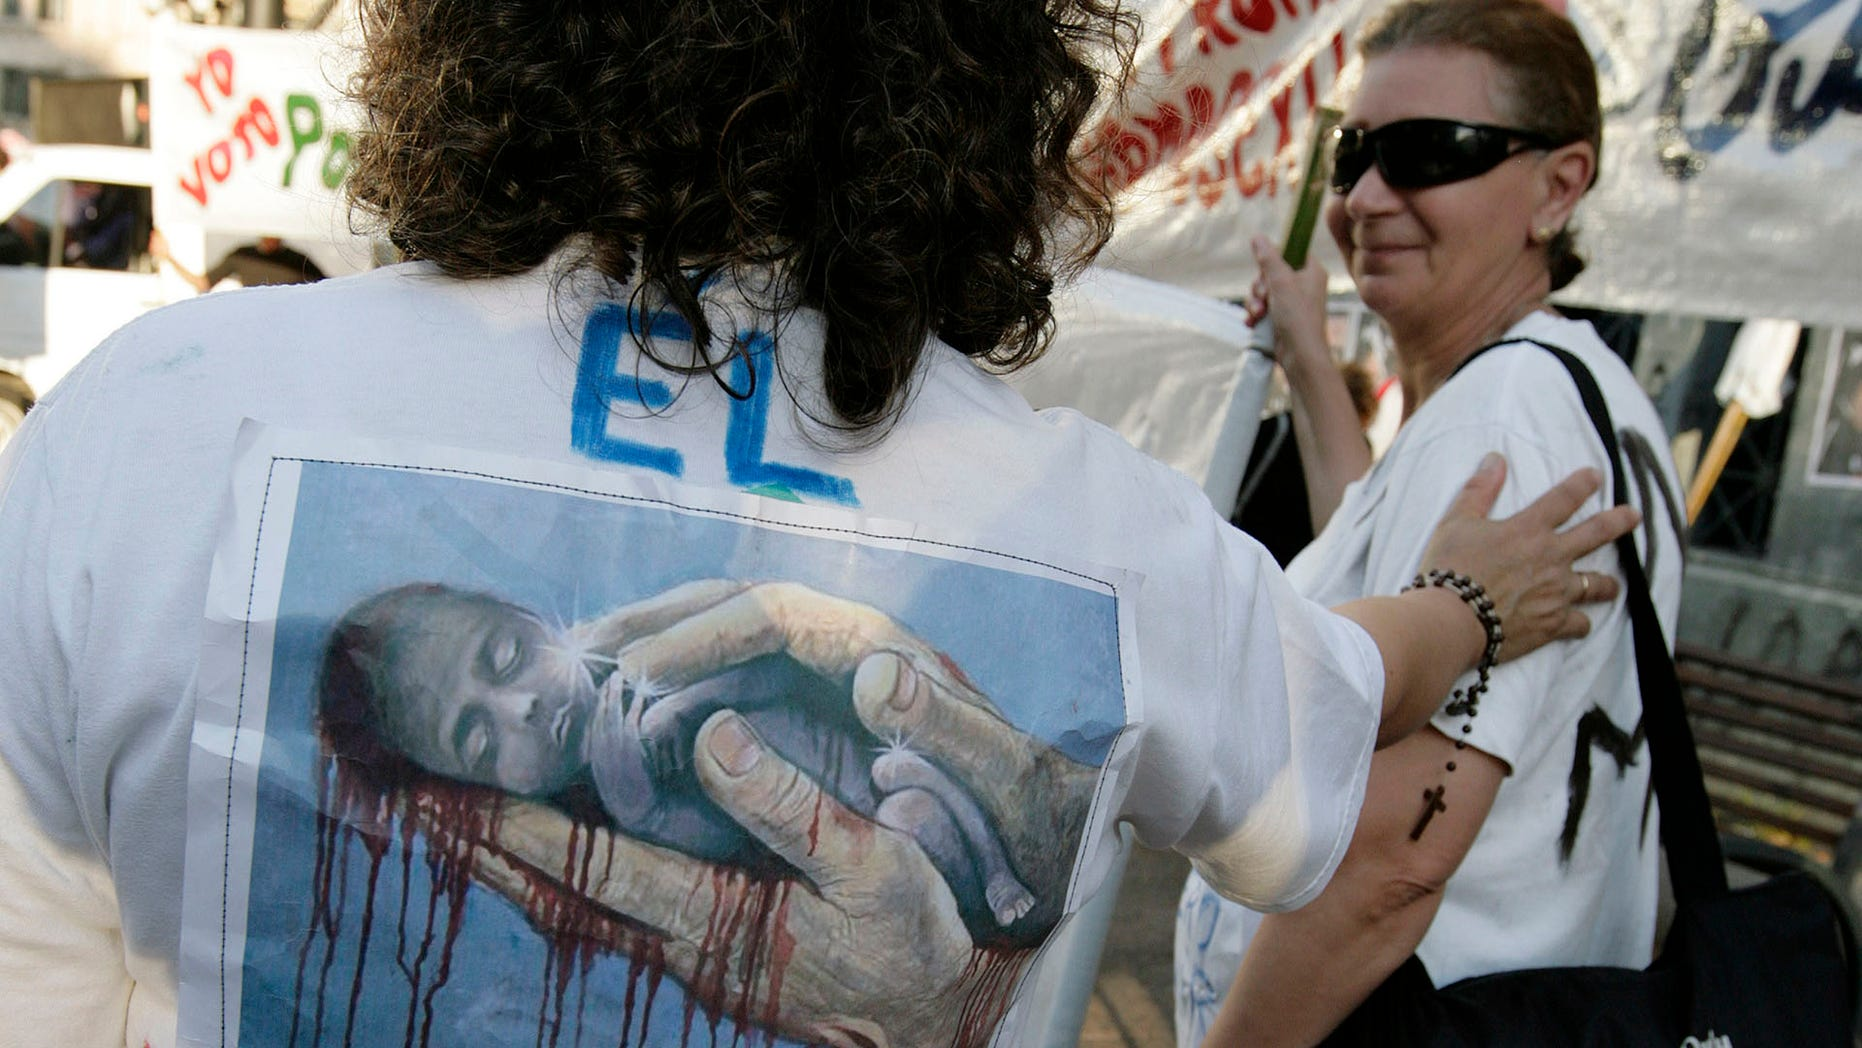 People demonstrate against abortion in Montevideo, Uruguay's capital.